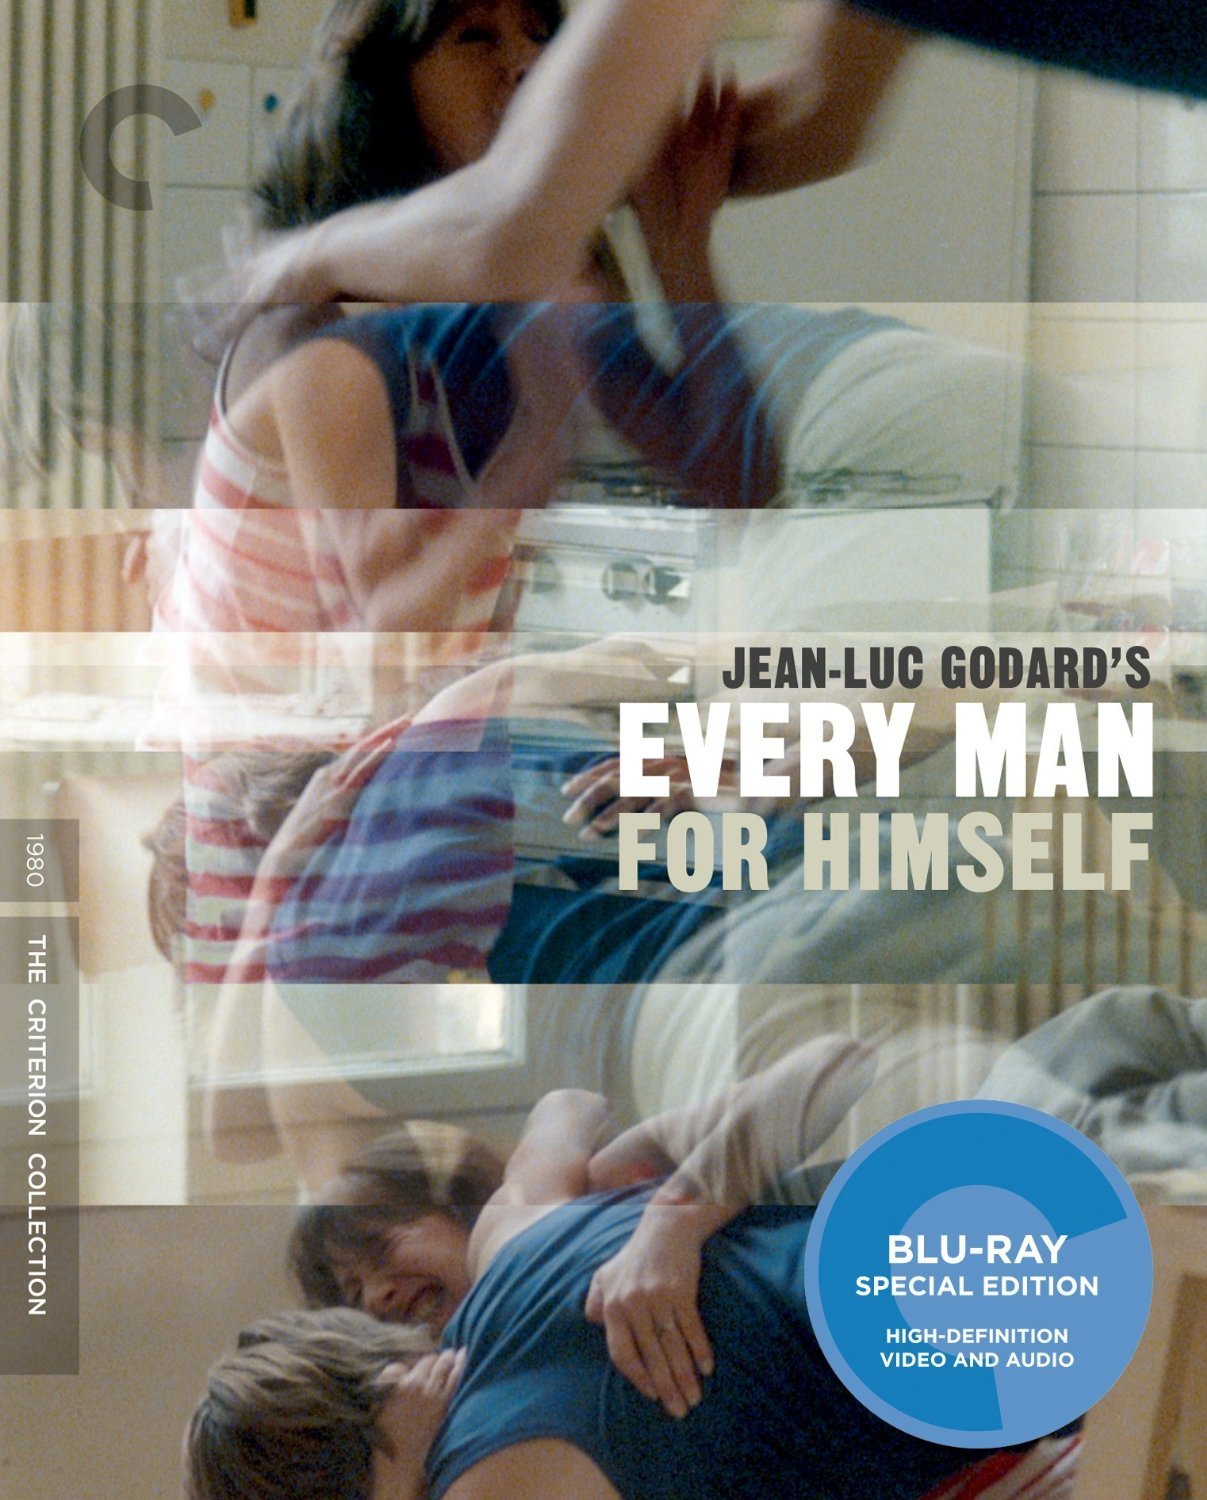 every man for himself blu ray review slant magazine